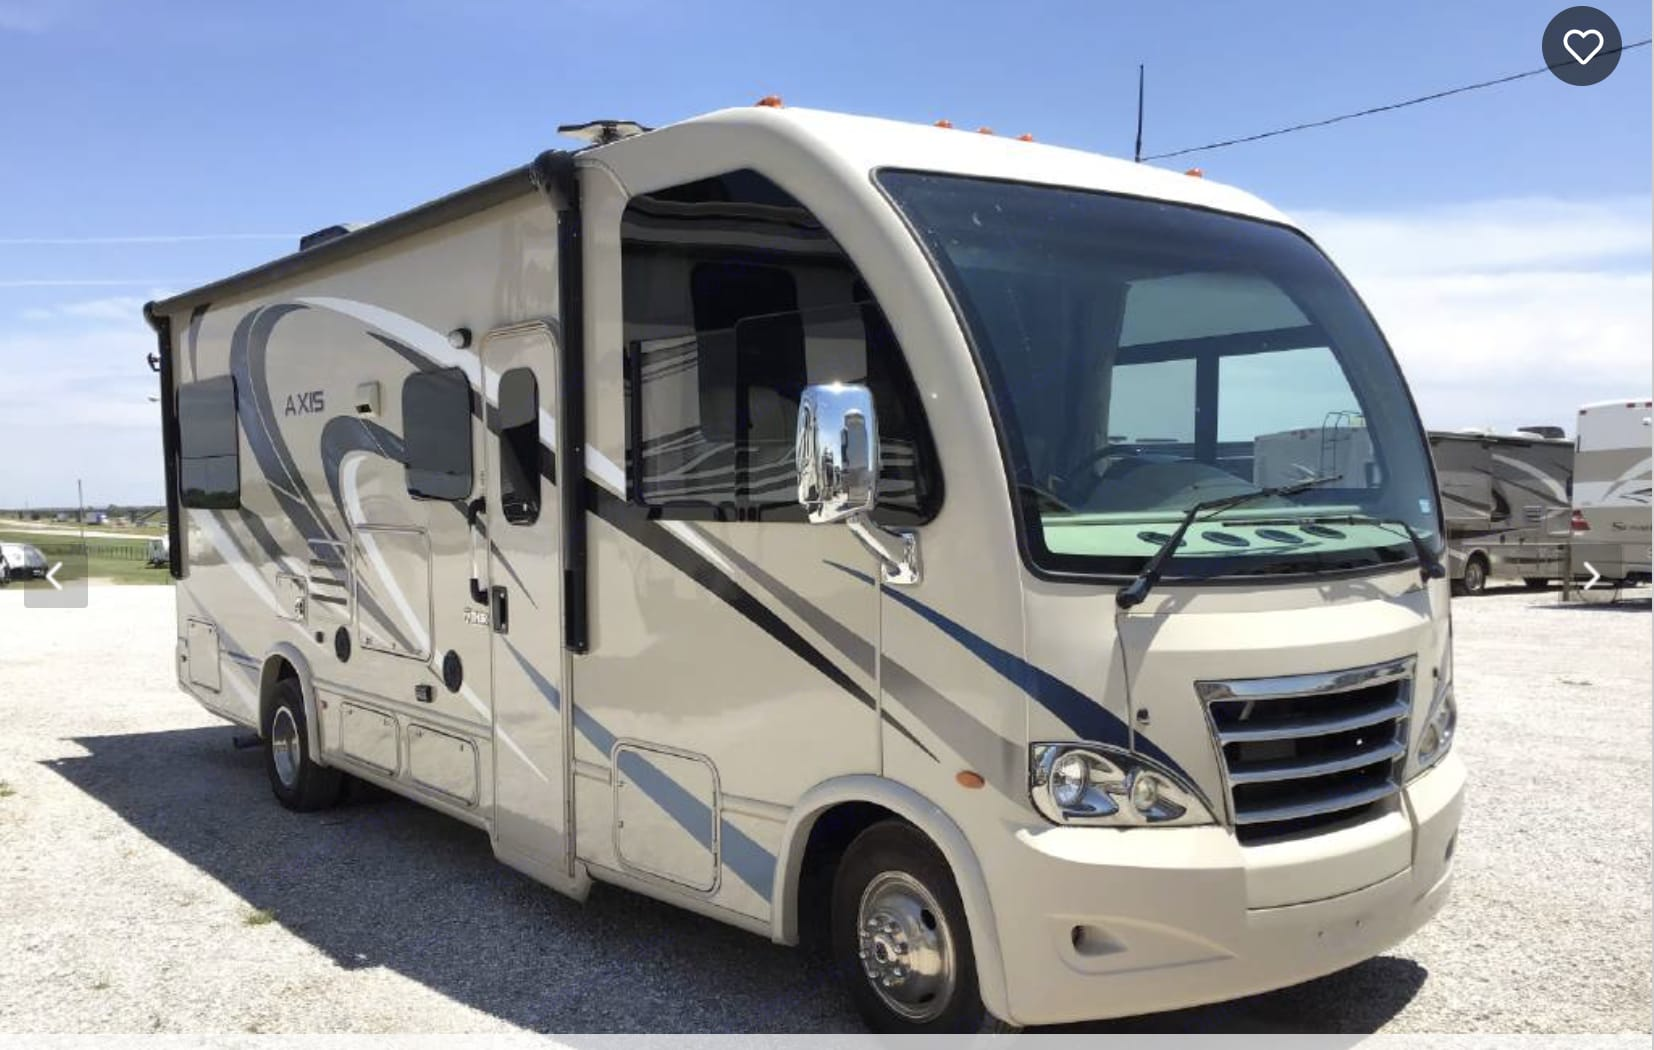 Military-grade SEALANT in TIRES lowers risk of blowouts.  Low miles, like new.. Thor Motor Coach Axis 2017